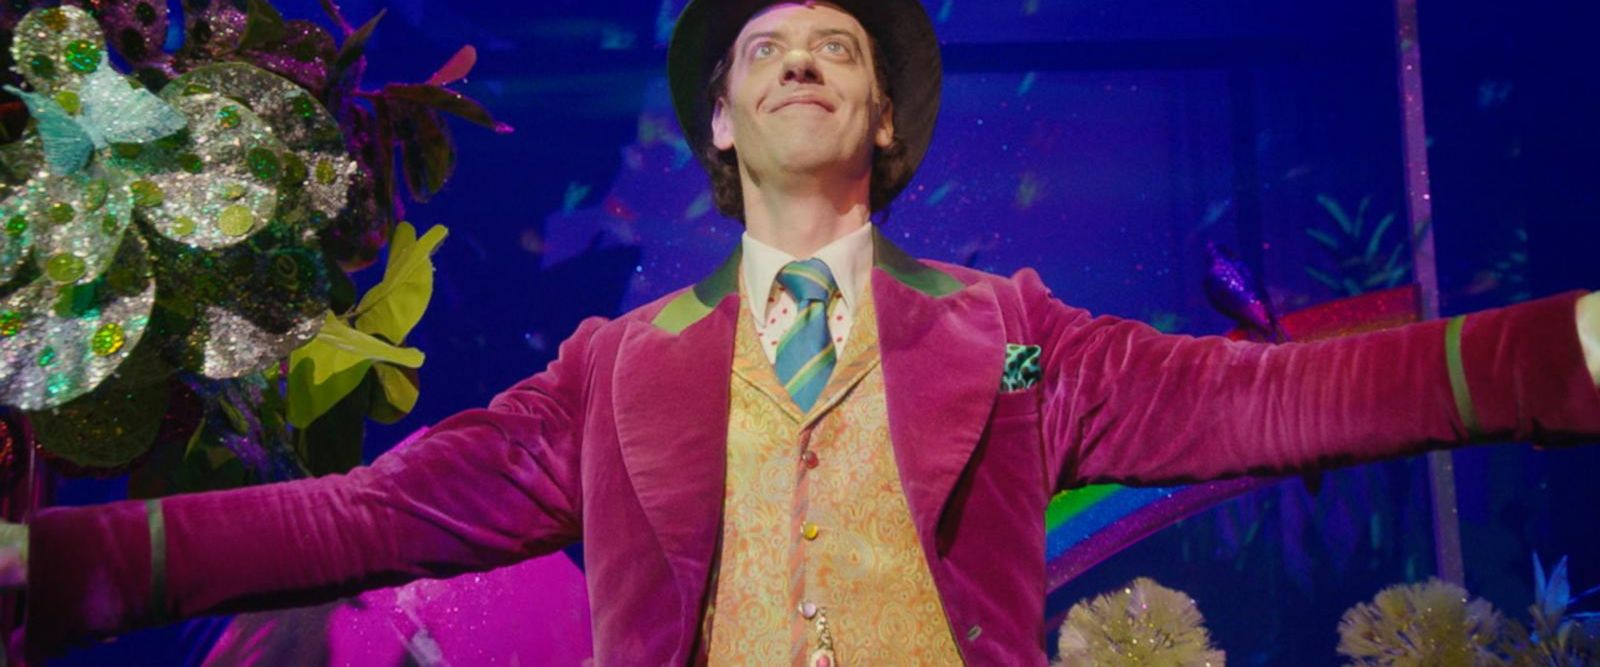 VIDEO: Behind the scenes of 'Charlie and the Chocolate Factory' on Broadway